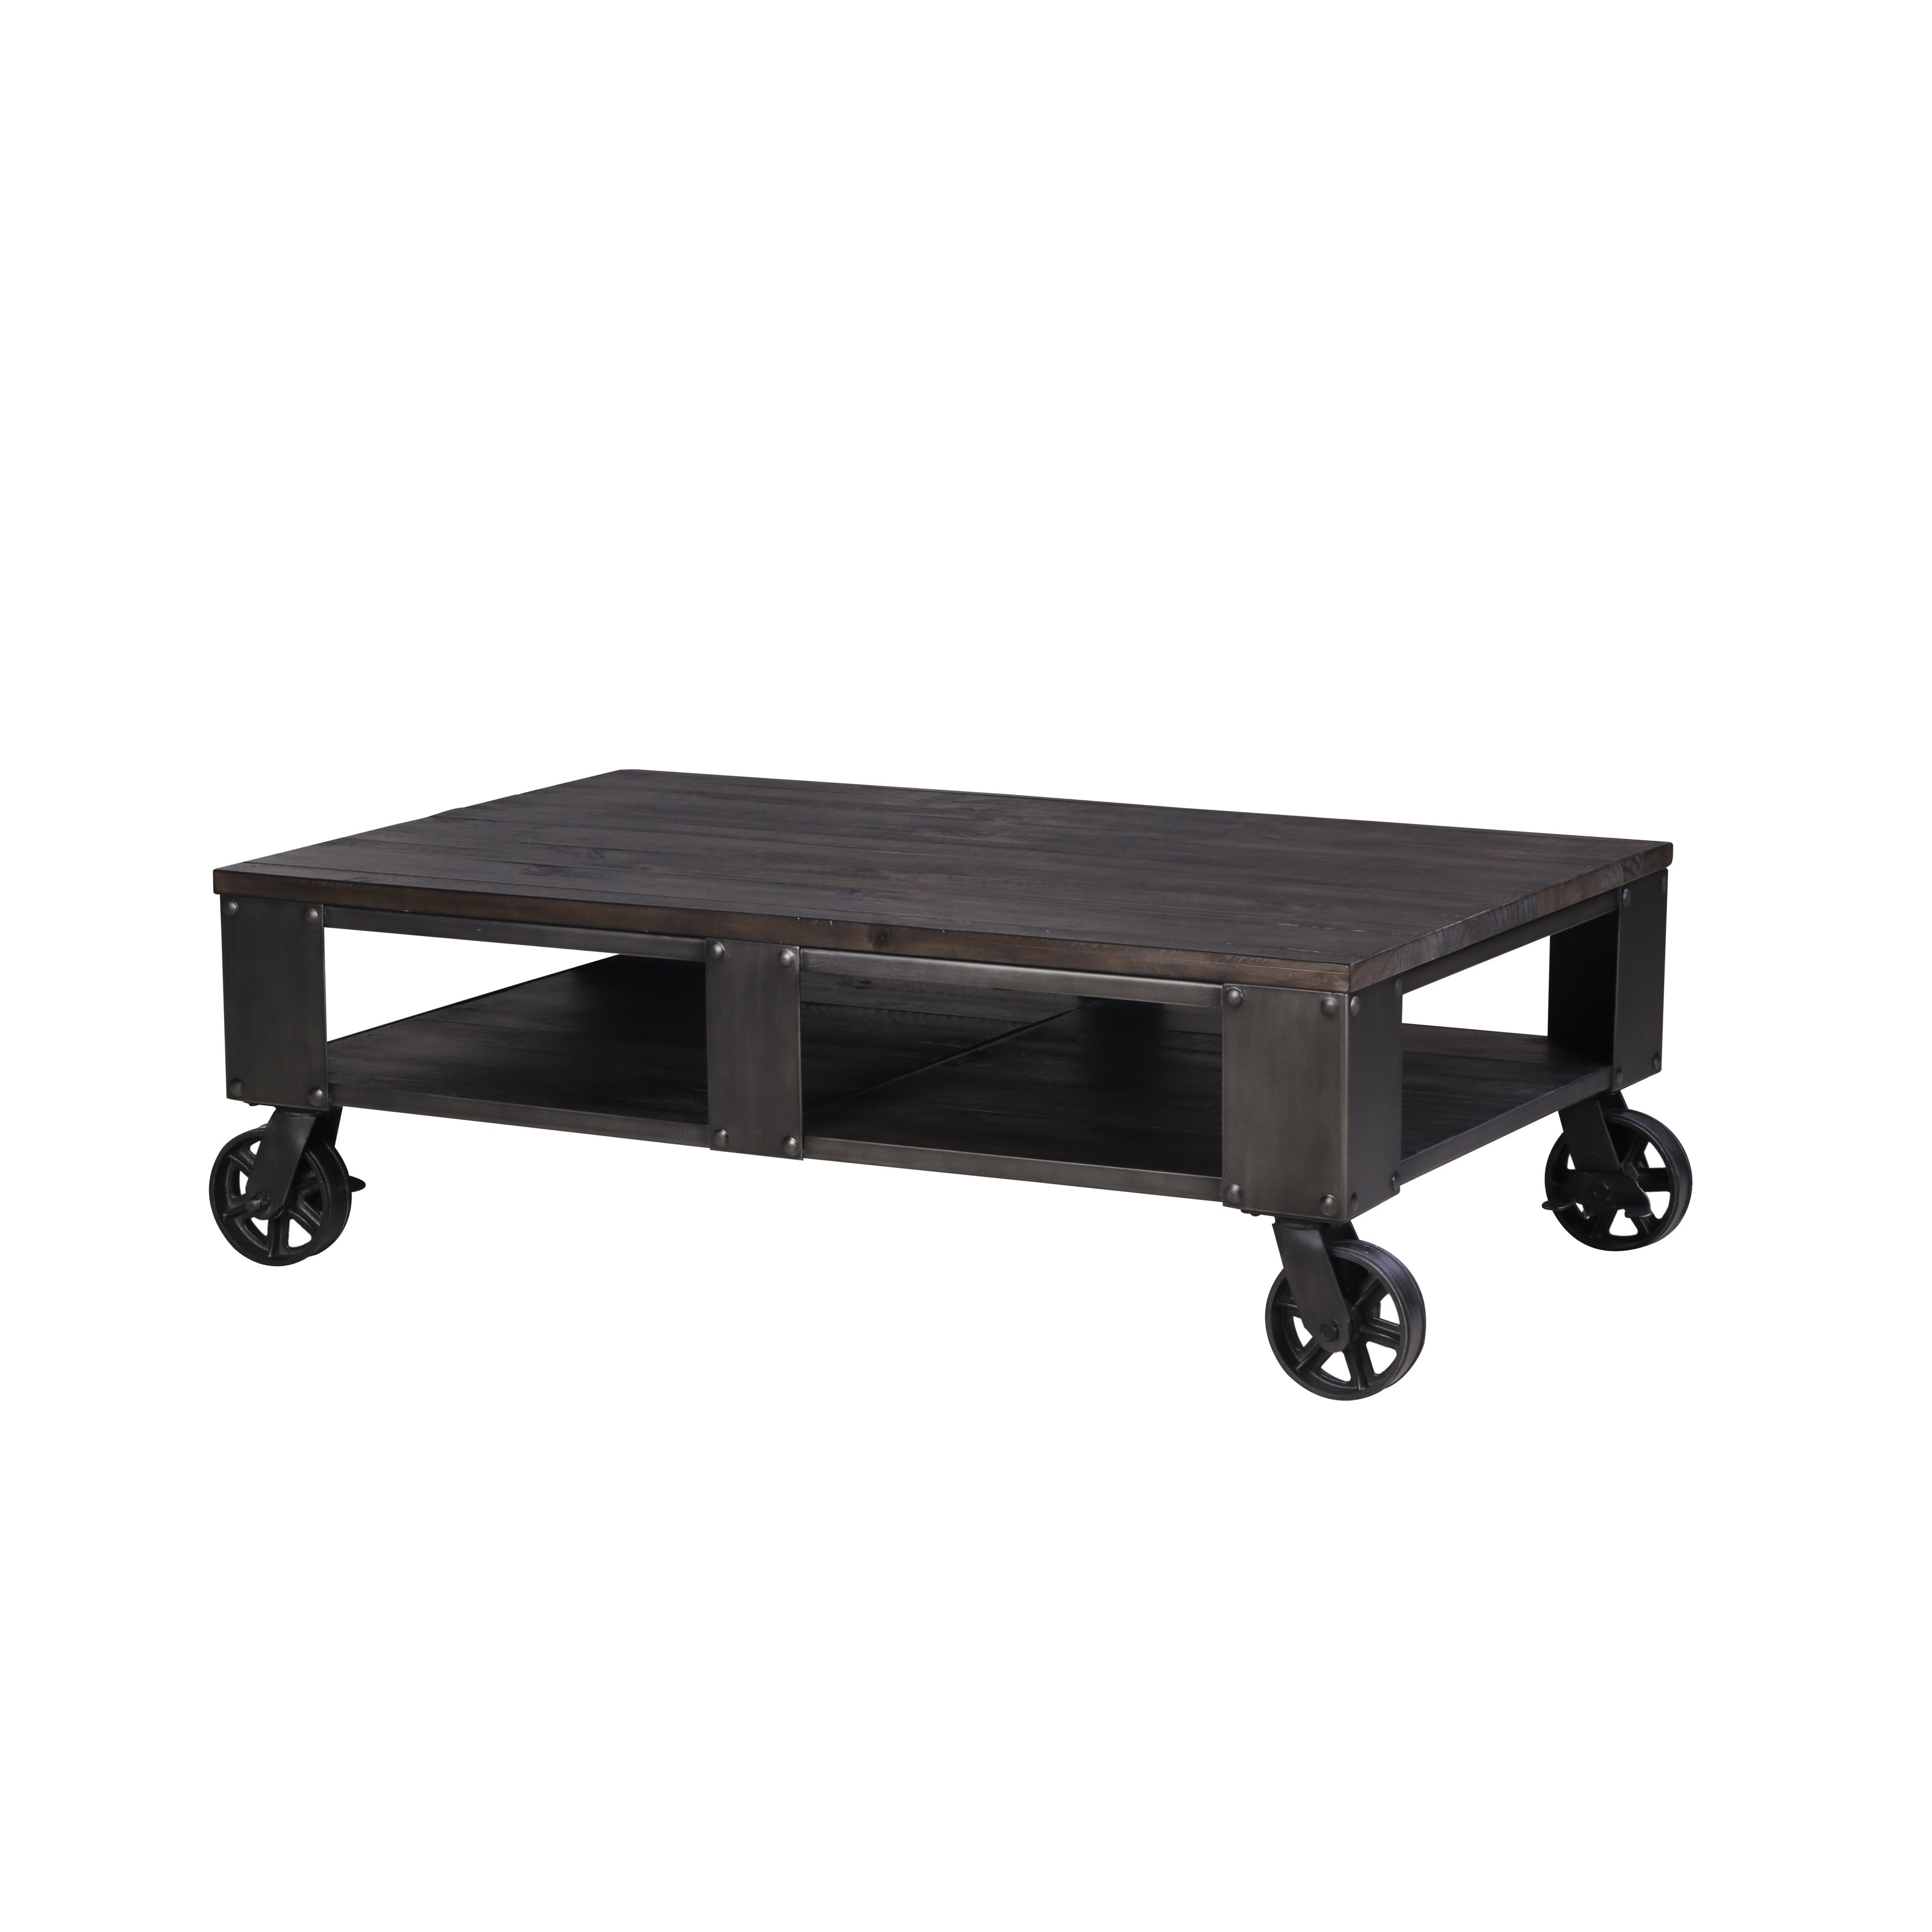 Ord Weathered Charcoal Wood And Metal Coffee Table With Casters Free Shipping Today 13321549